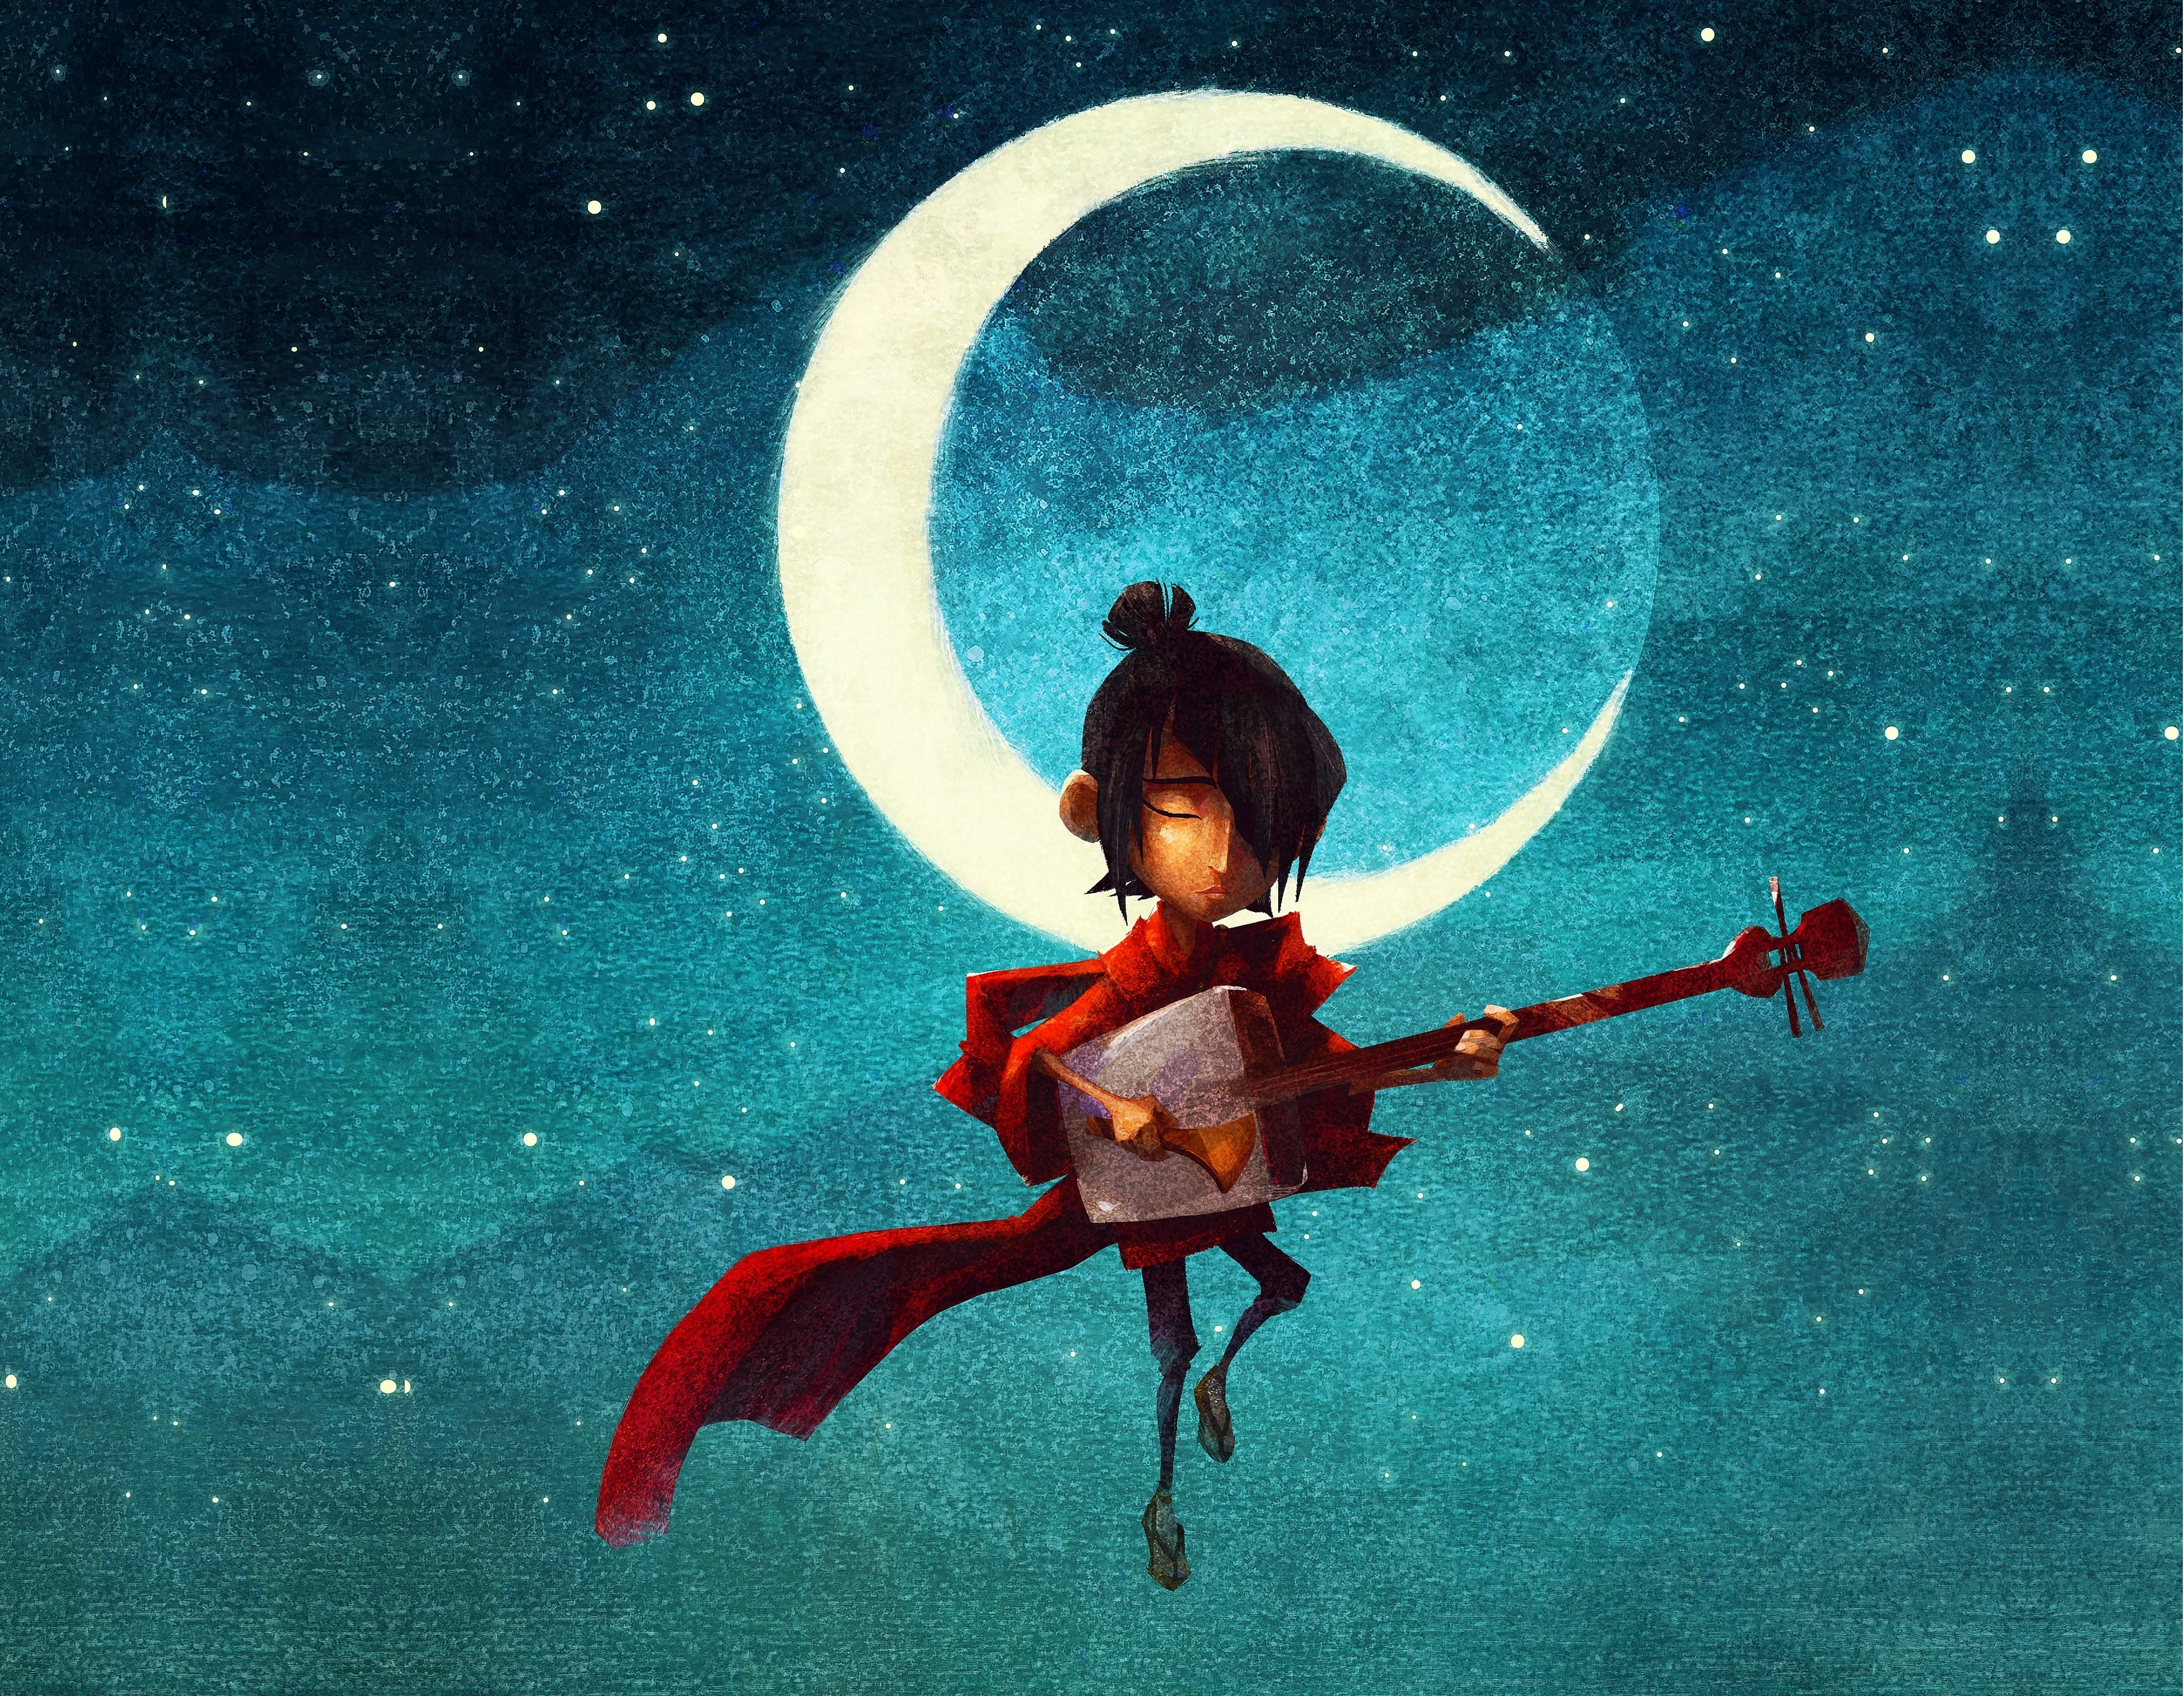 Cool Lion Wallpapers Hd Wallpaper Kubo And The Two Strings Best Animation Movies